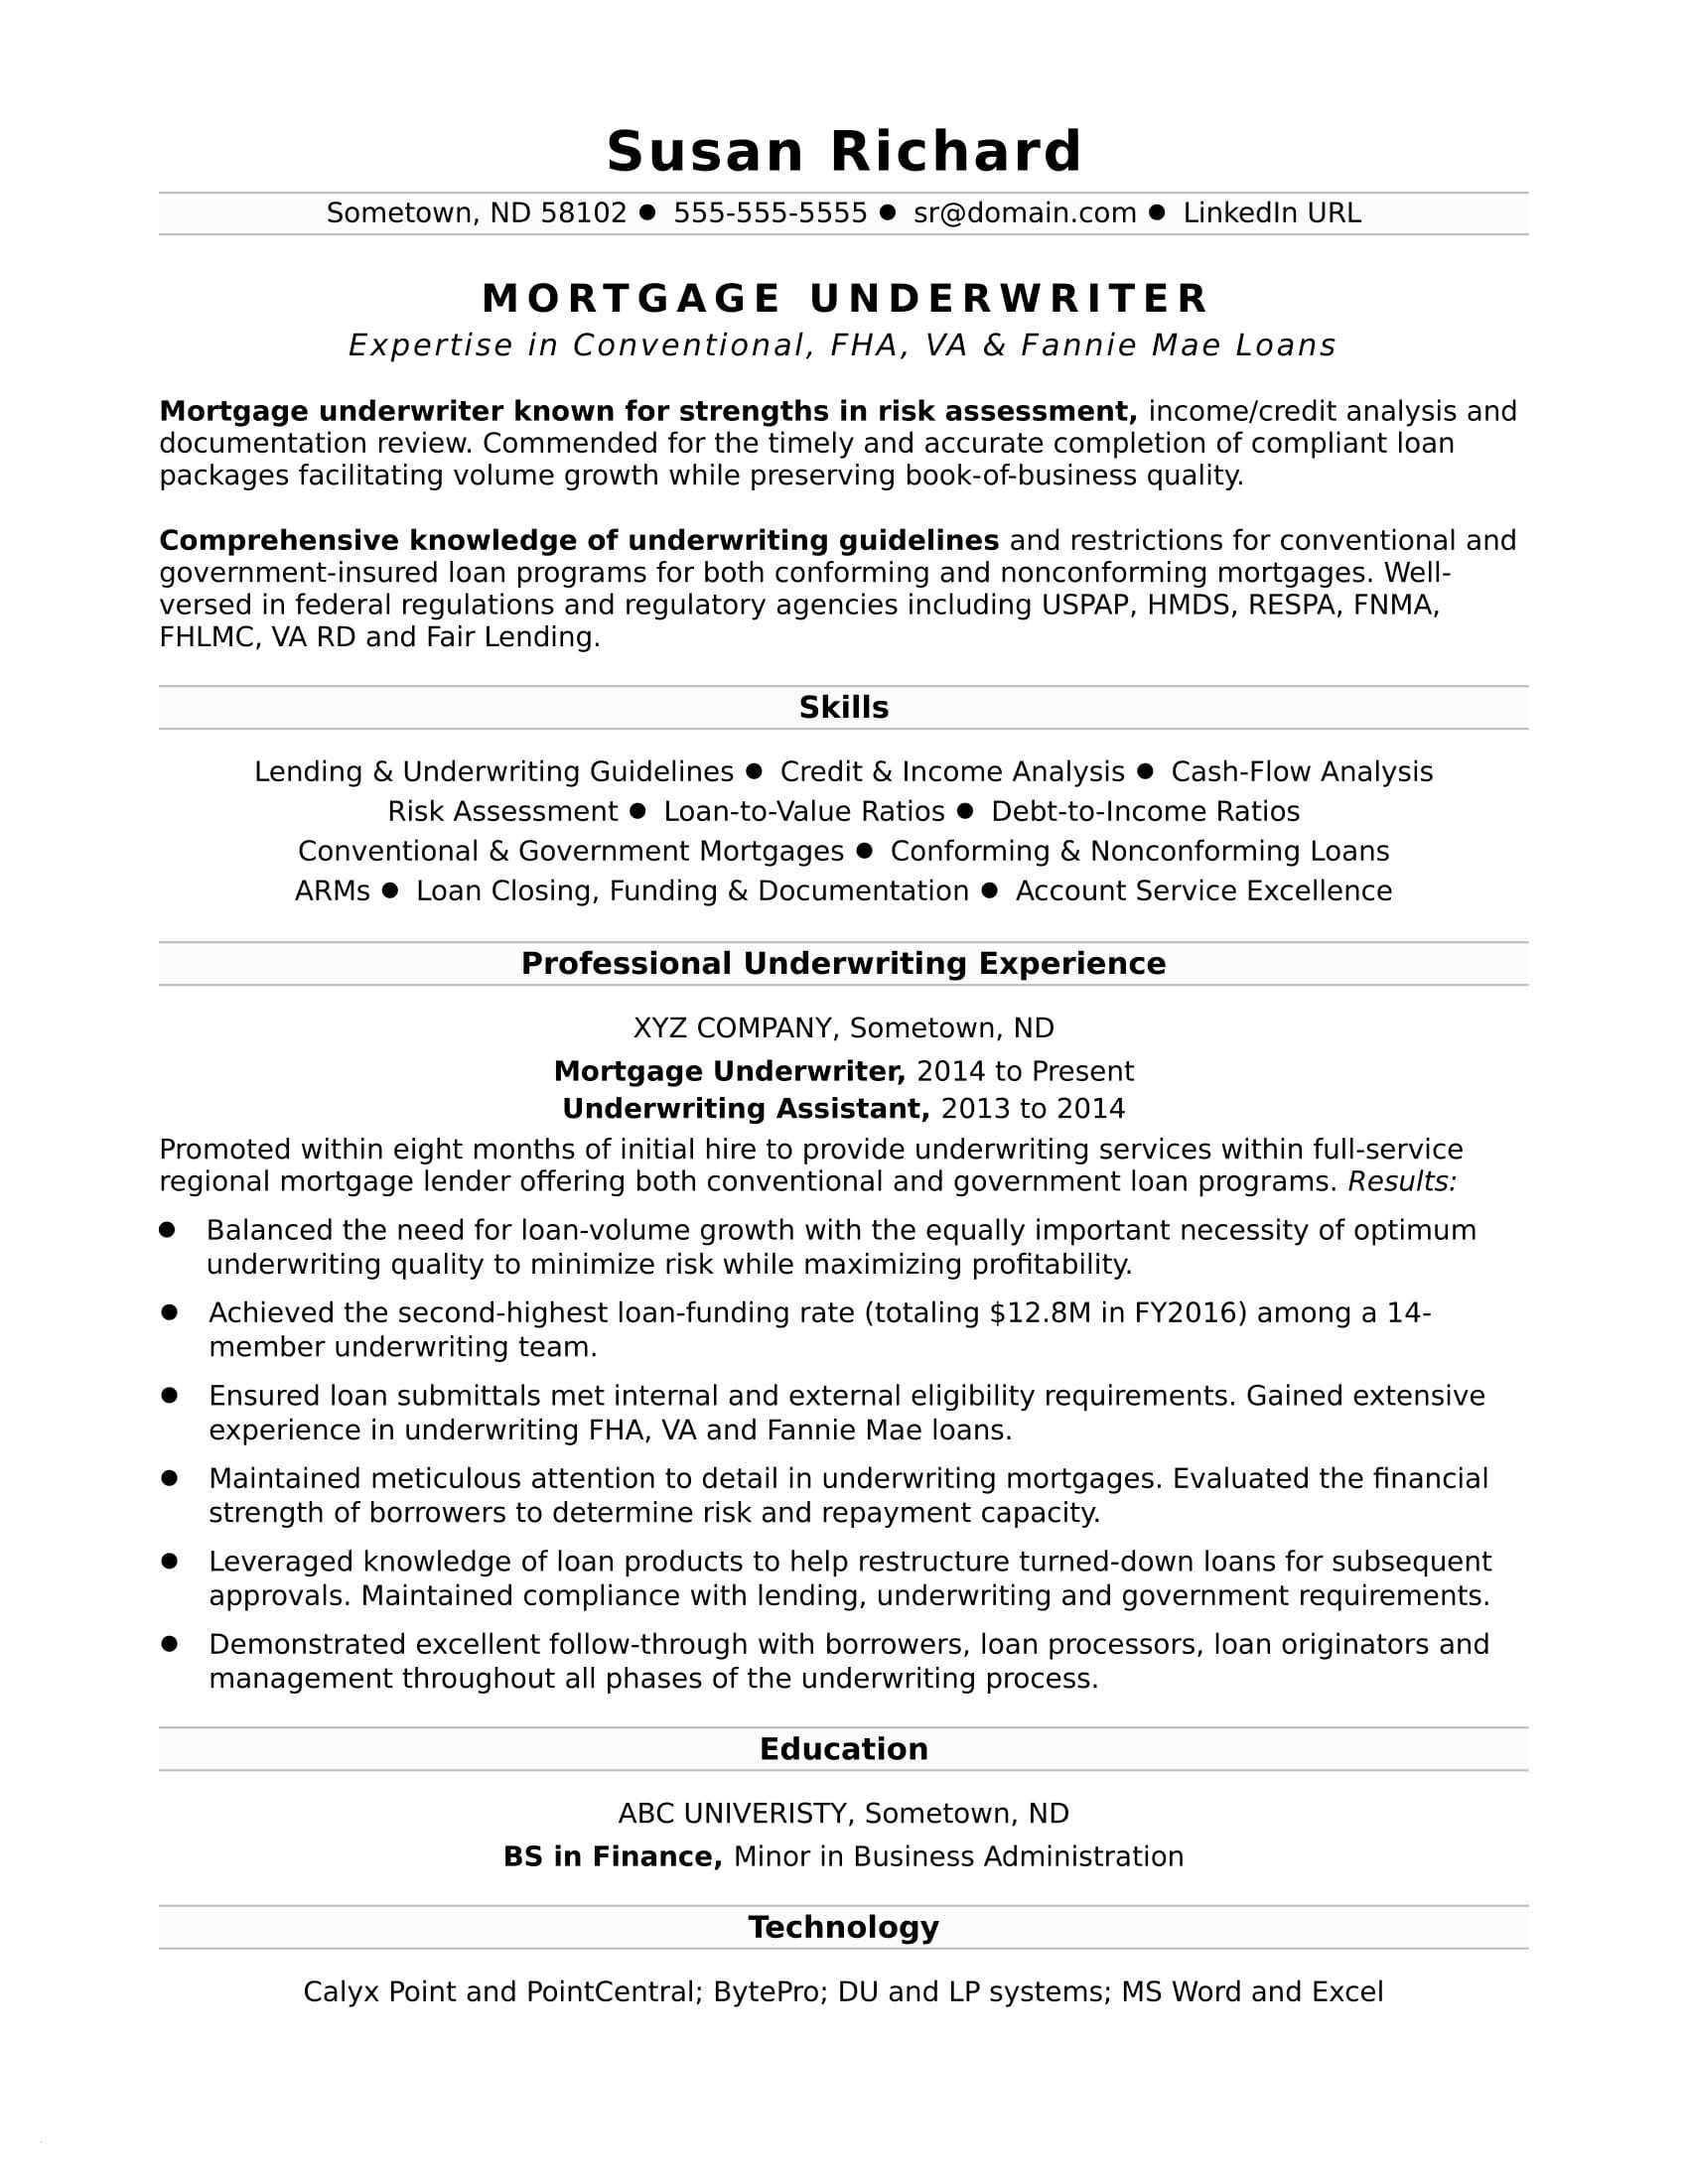 Pharmacist Resume Template Word - Pharmacist Resume Templates Awesome Free Basic Resume Templates